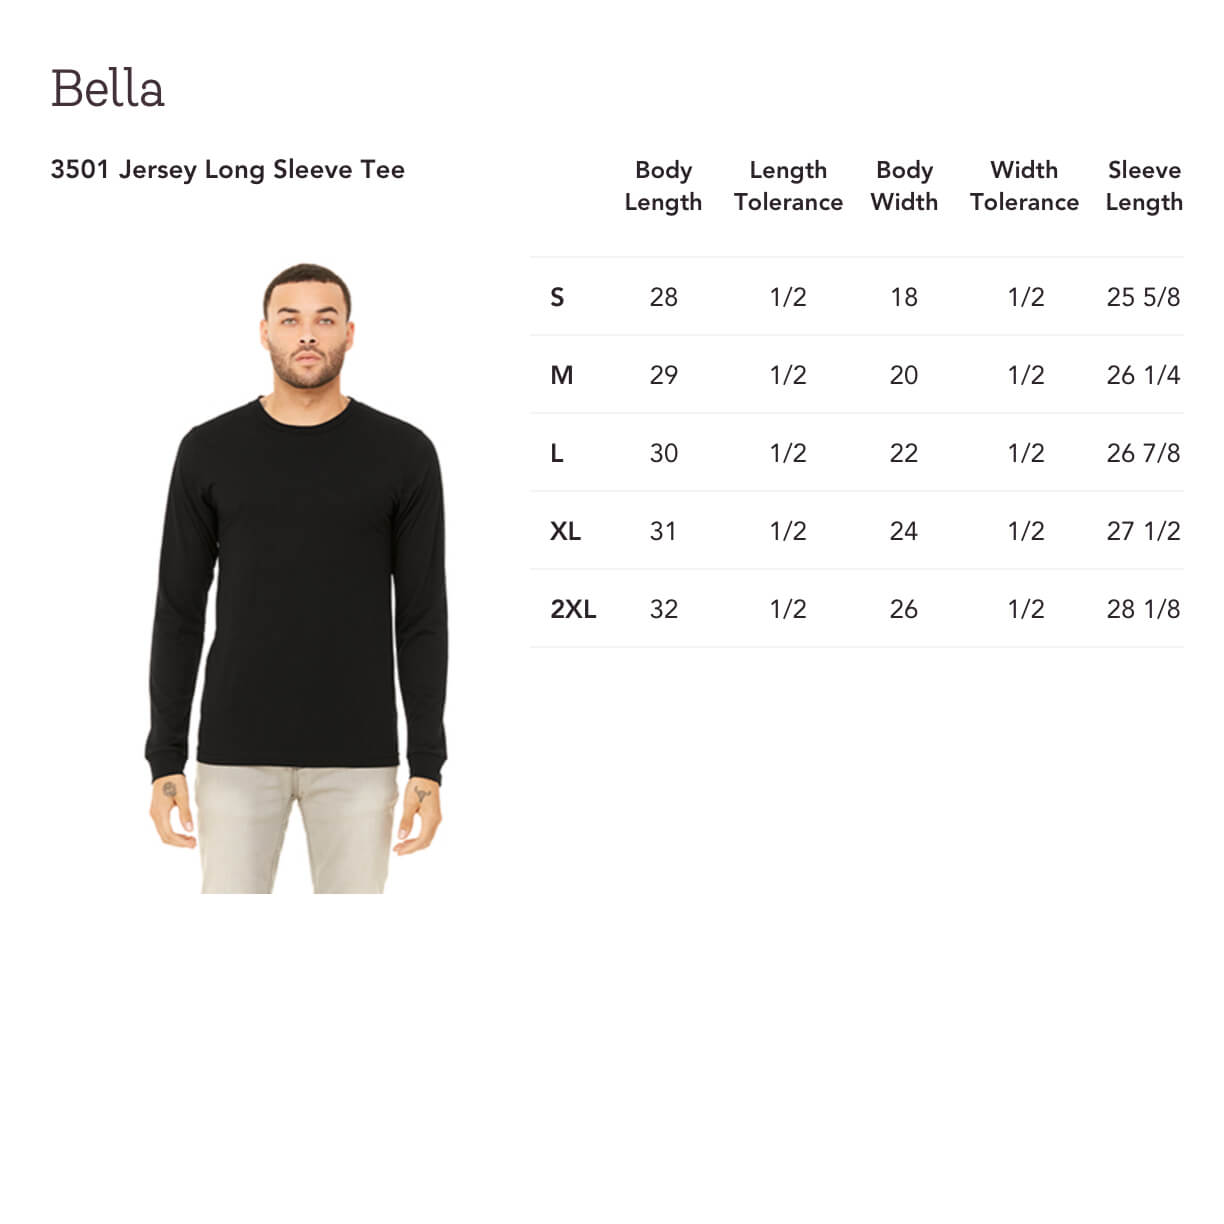 5b963bfb548a4 This Bella classic unisex tee fits like a well-loved favorite, featuring a  classic crew neck, long sleeves and superior combed and ring-spun jersey  cotton ...